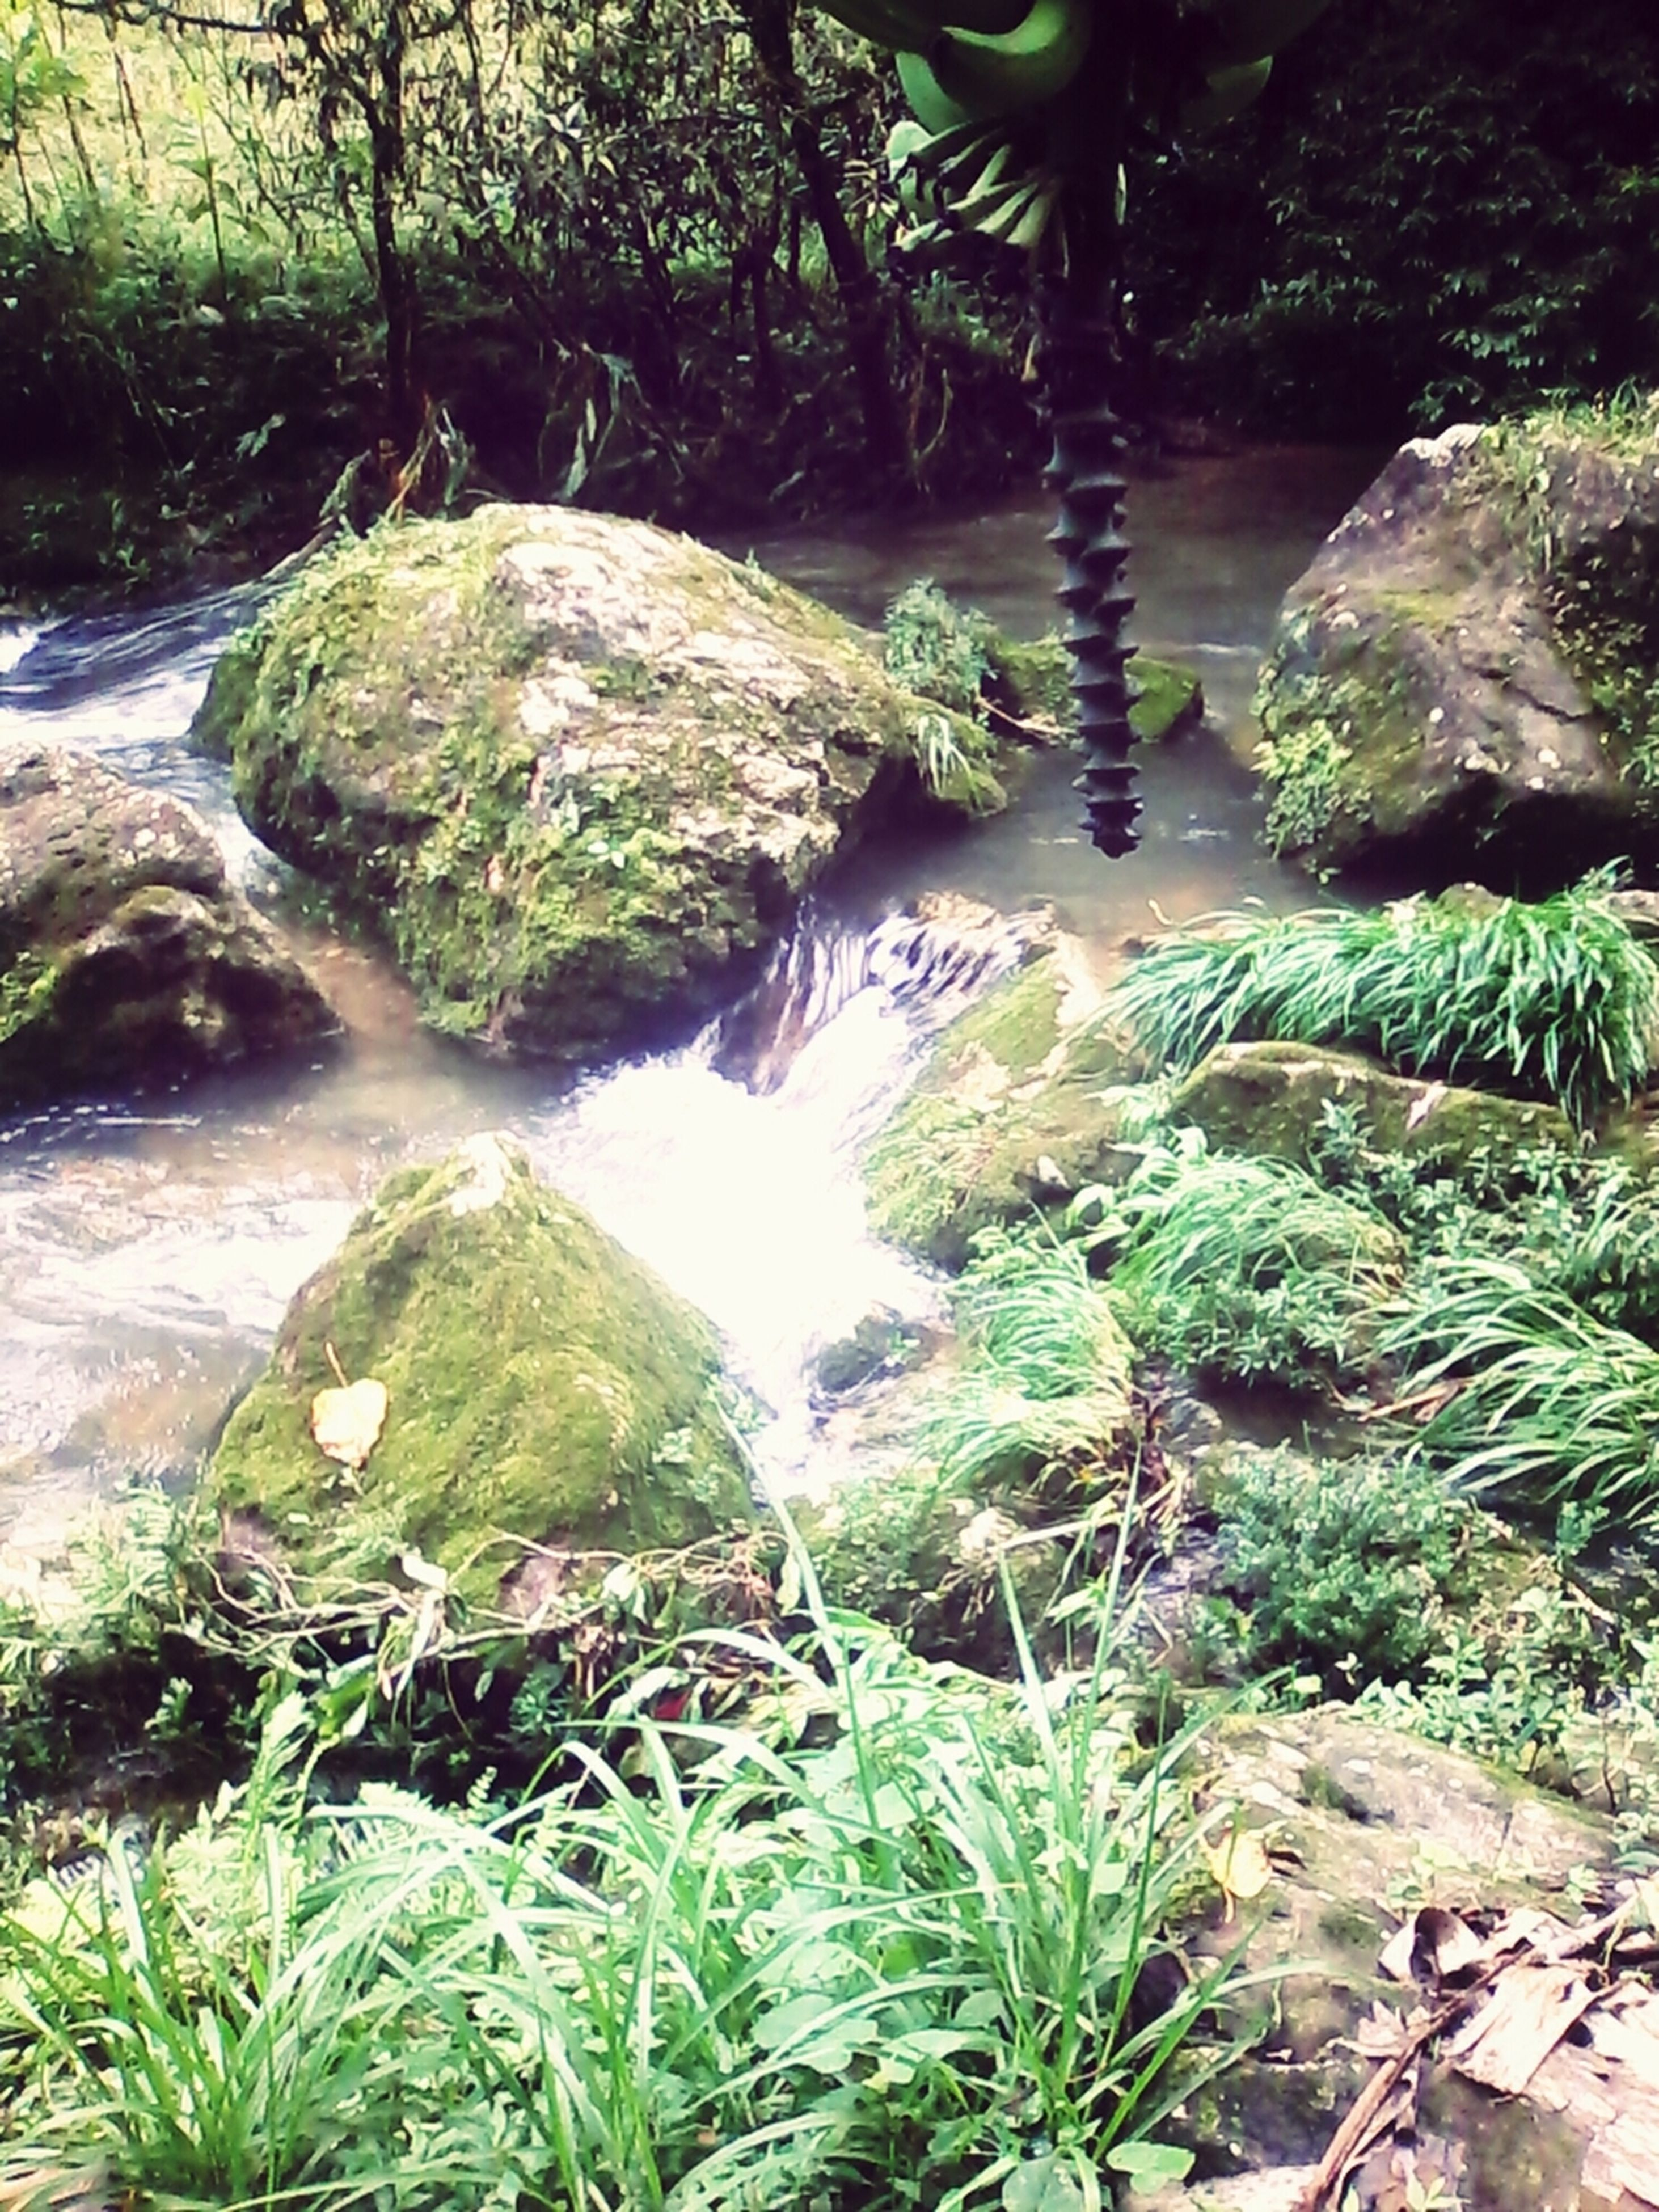 water, rock - object, tranquility, beauty in nature, nature, forest, tranquil scene, scenics, green color, stream, plant, growth, high angle view, tree, moss, flowing water, river, idyllic, day, non-urban scene